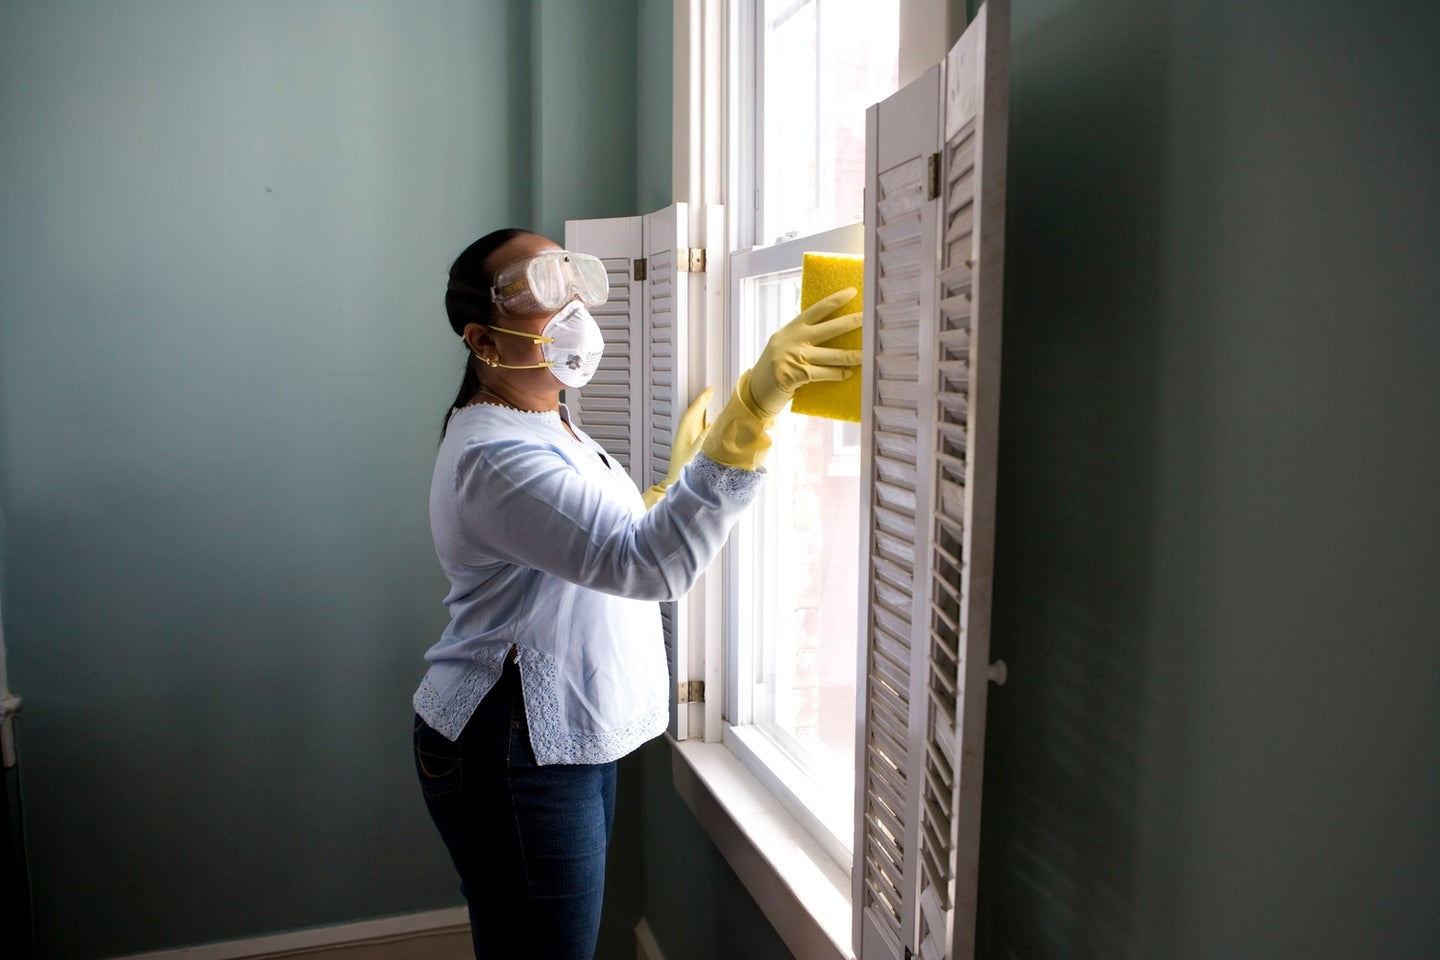 a woman wearing a face mask, goggles, and gloves while cleaning a window with a sponge